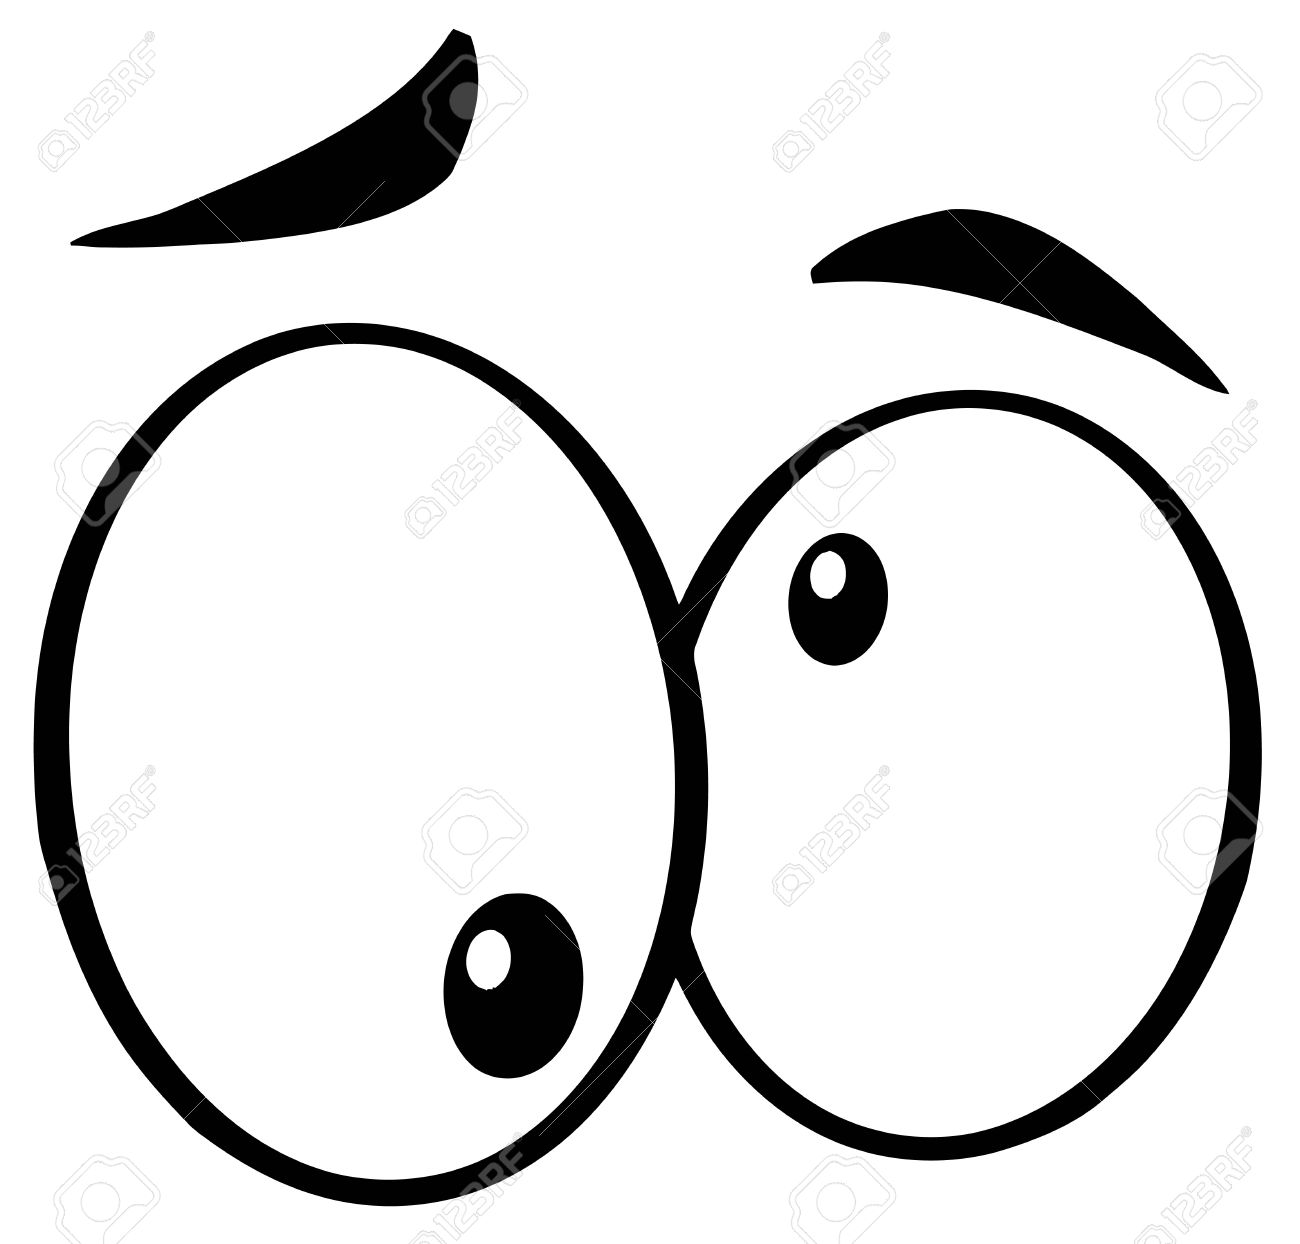 Eye clipart character. Googly eyes google search